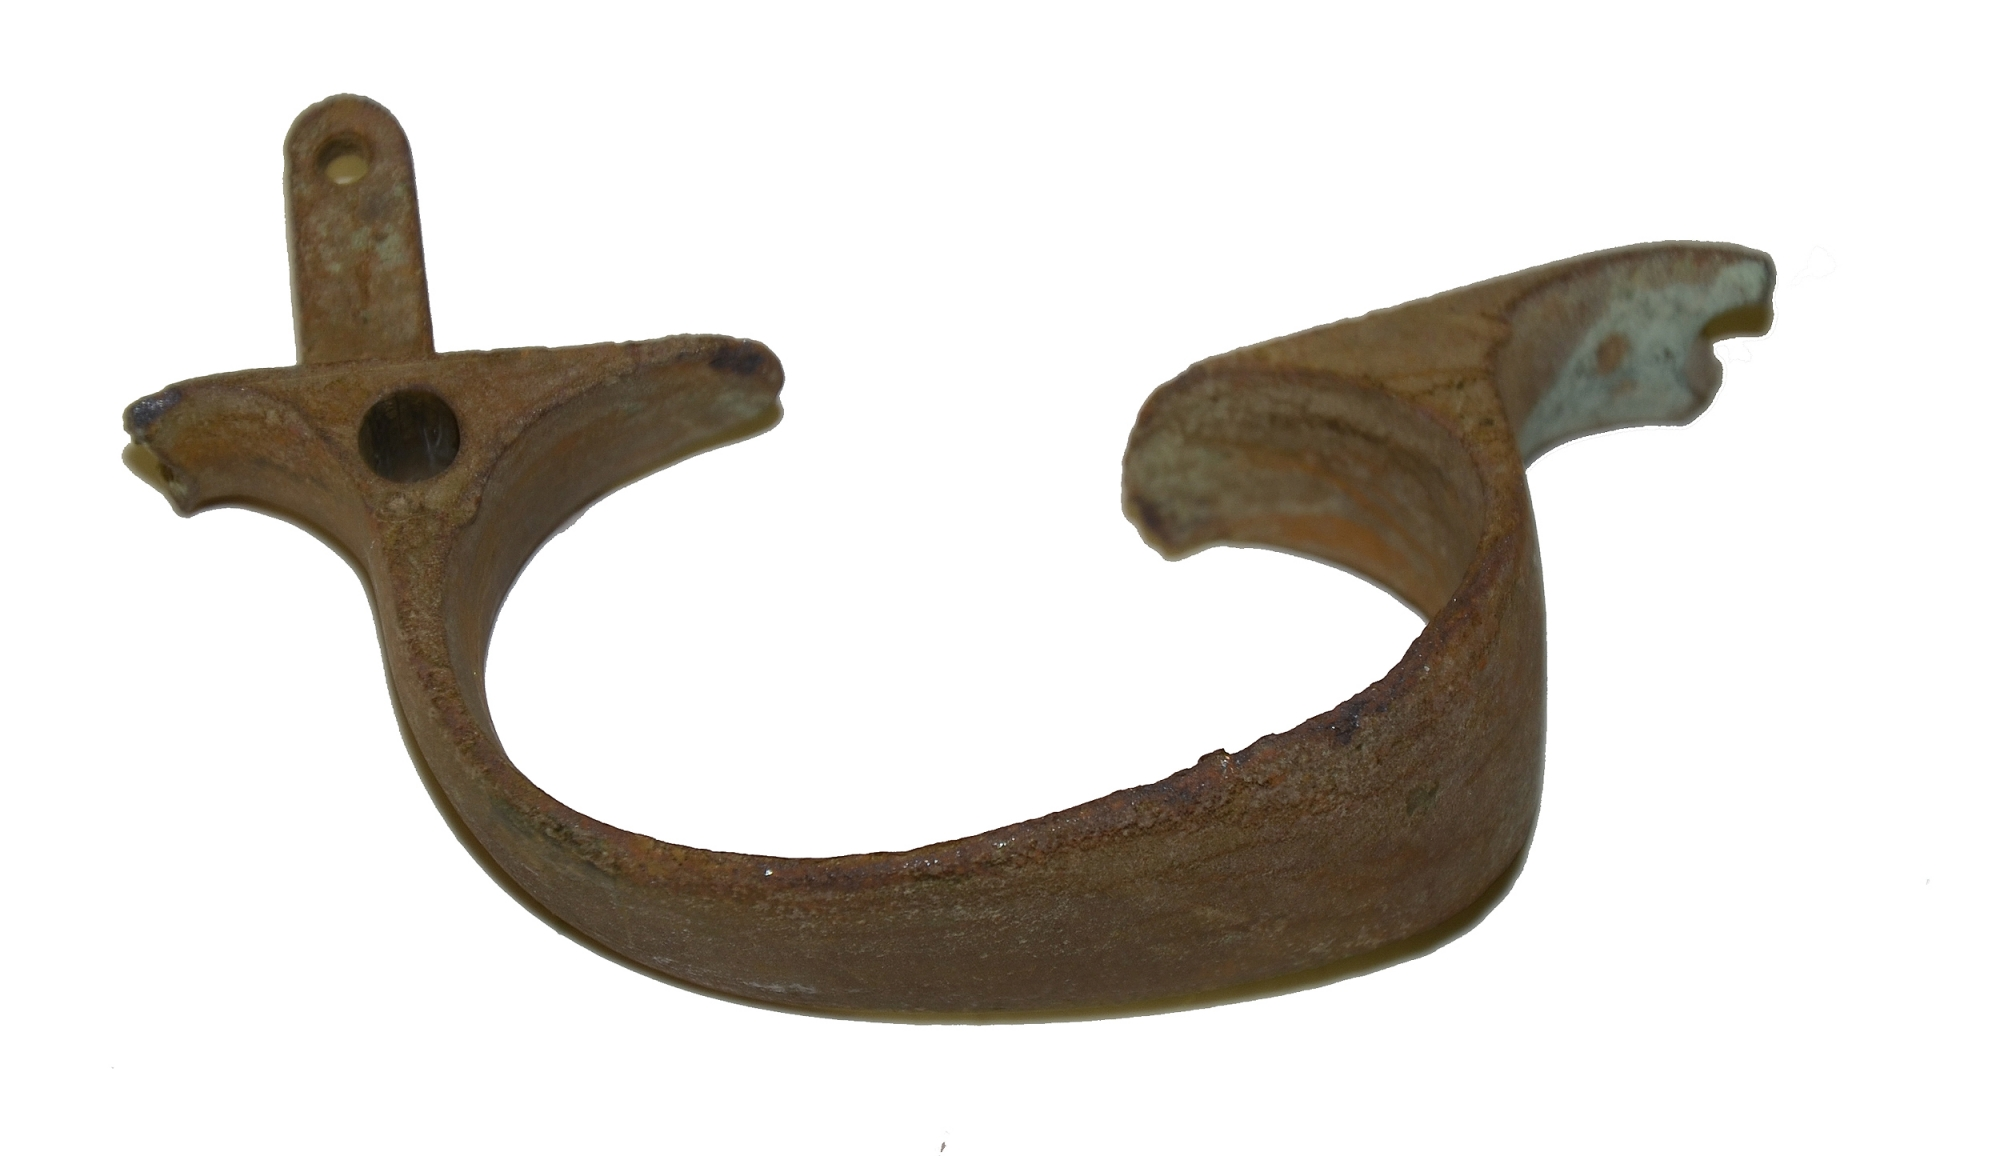 ENFIELD TRIGGER GUARD RECOVERED AT GETTYSBURG